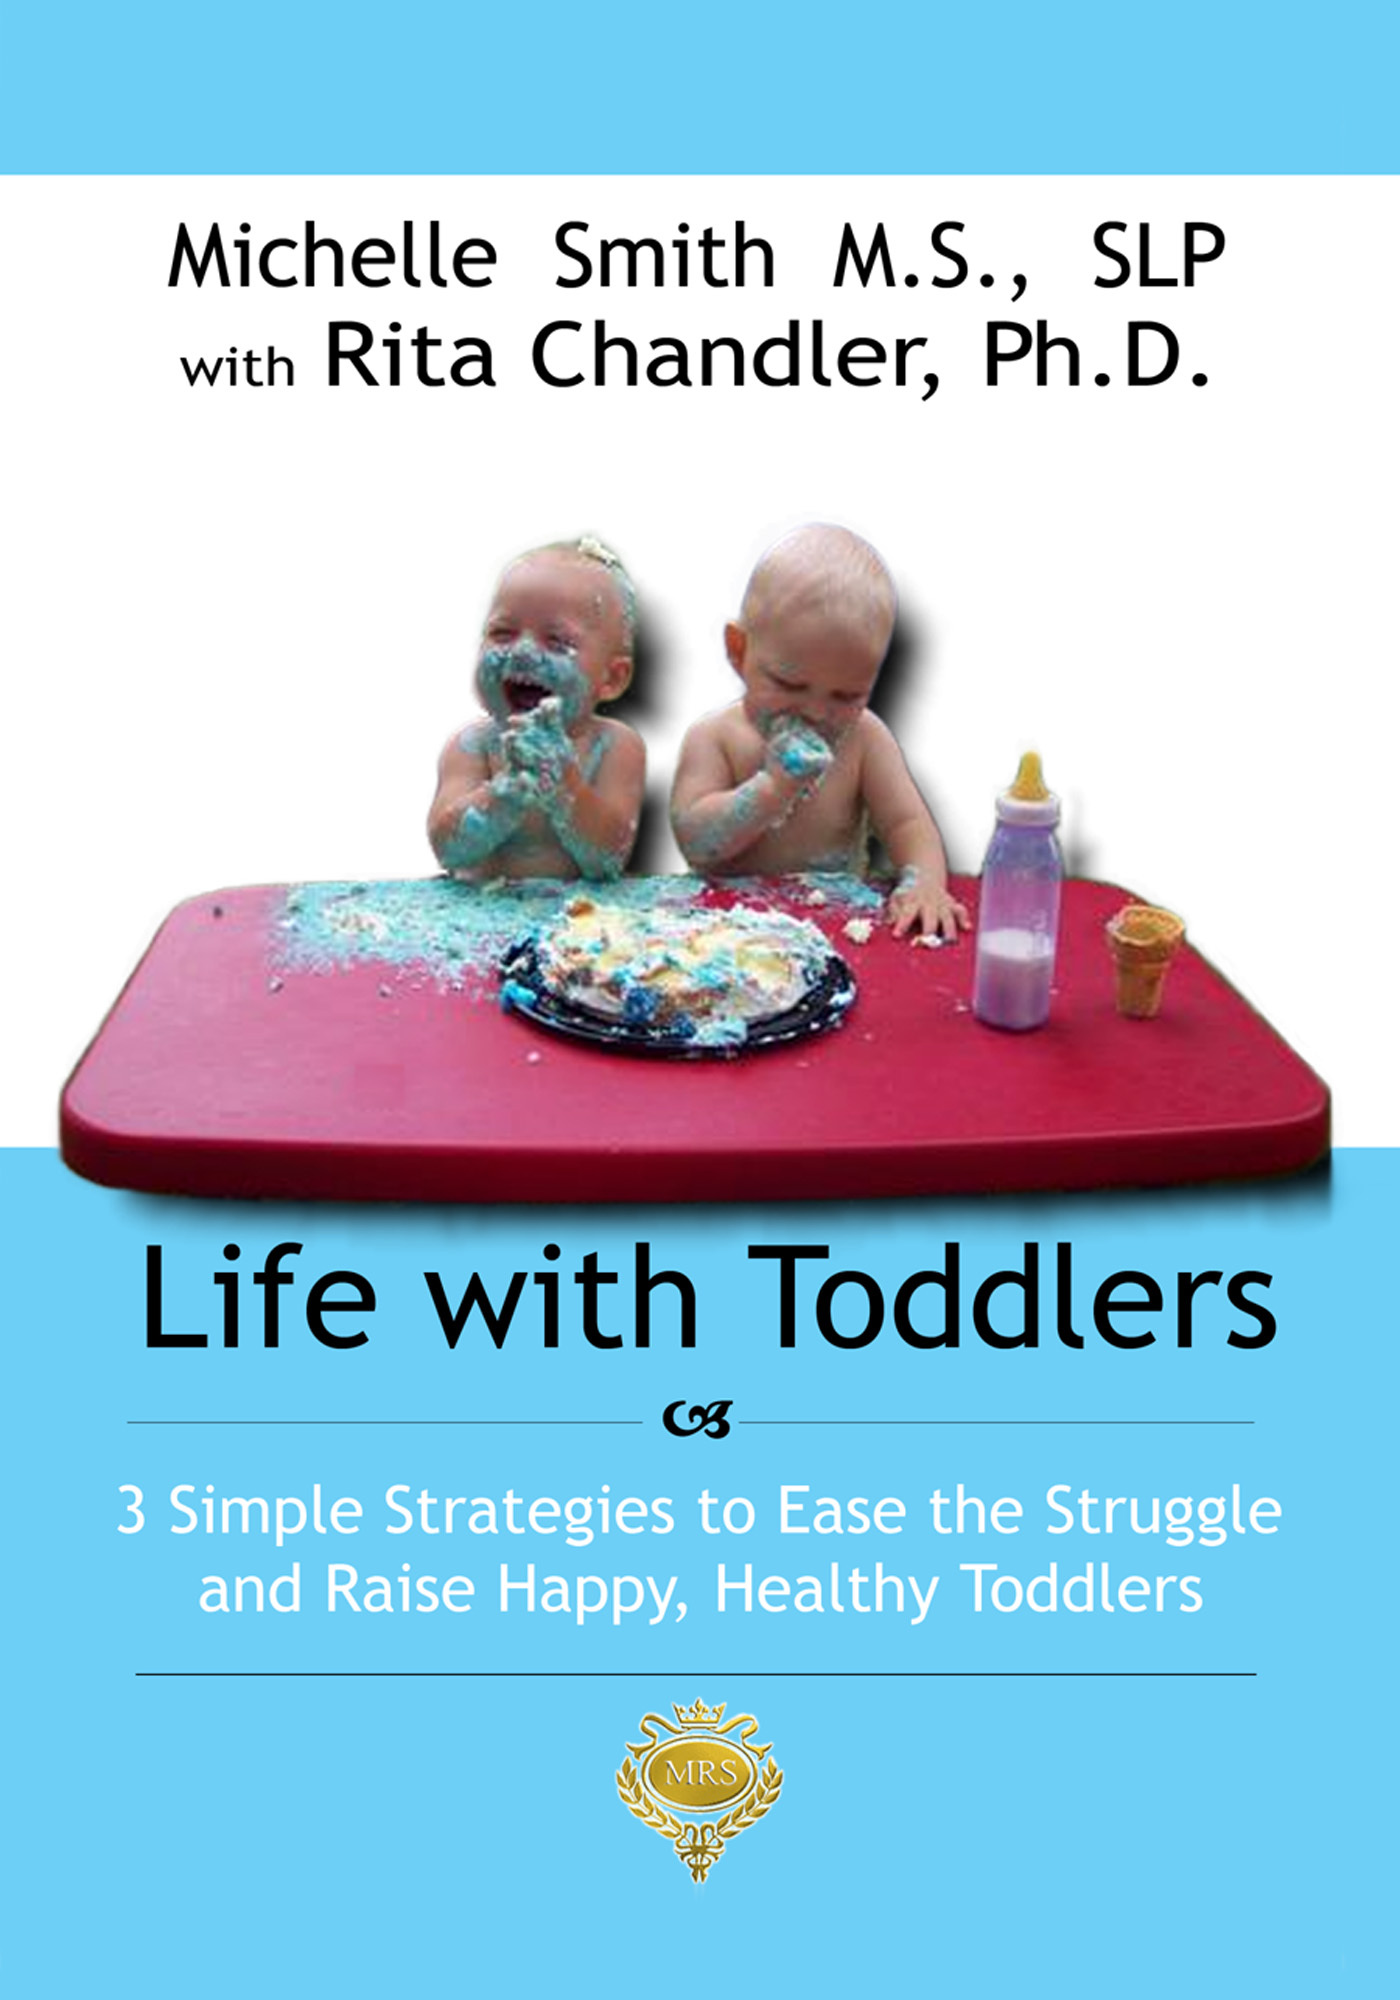 Life With Toddlers: 3 simple strategies to ease the struggle and raise happy, healthy toddlers By: Michelle Smith